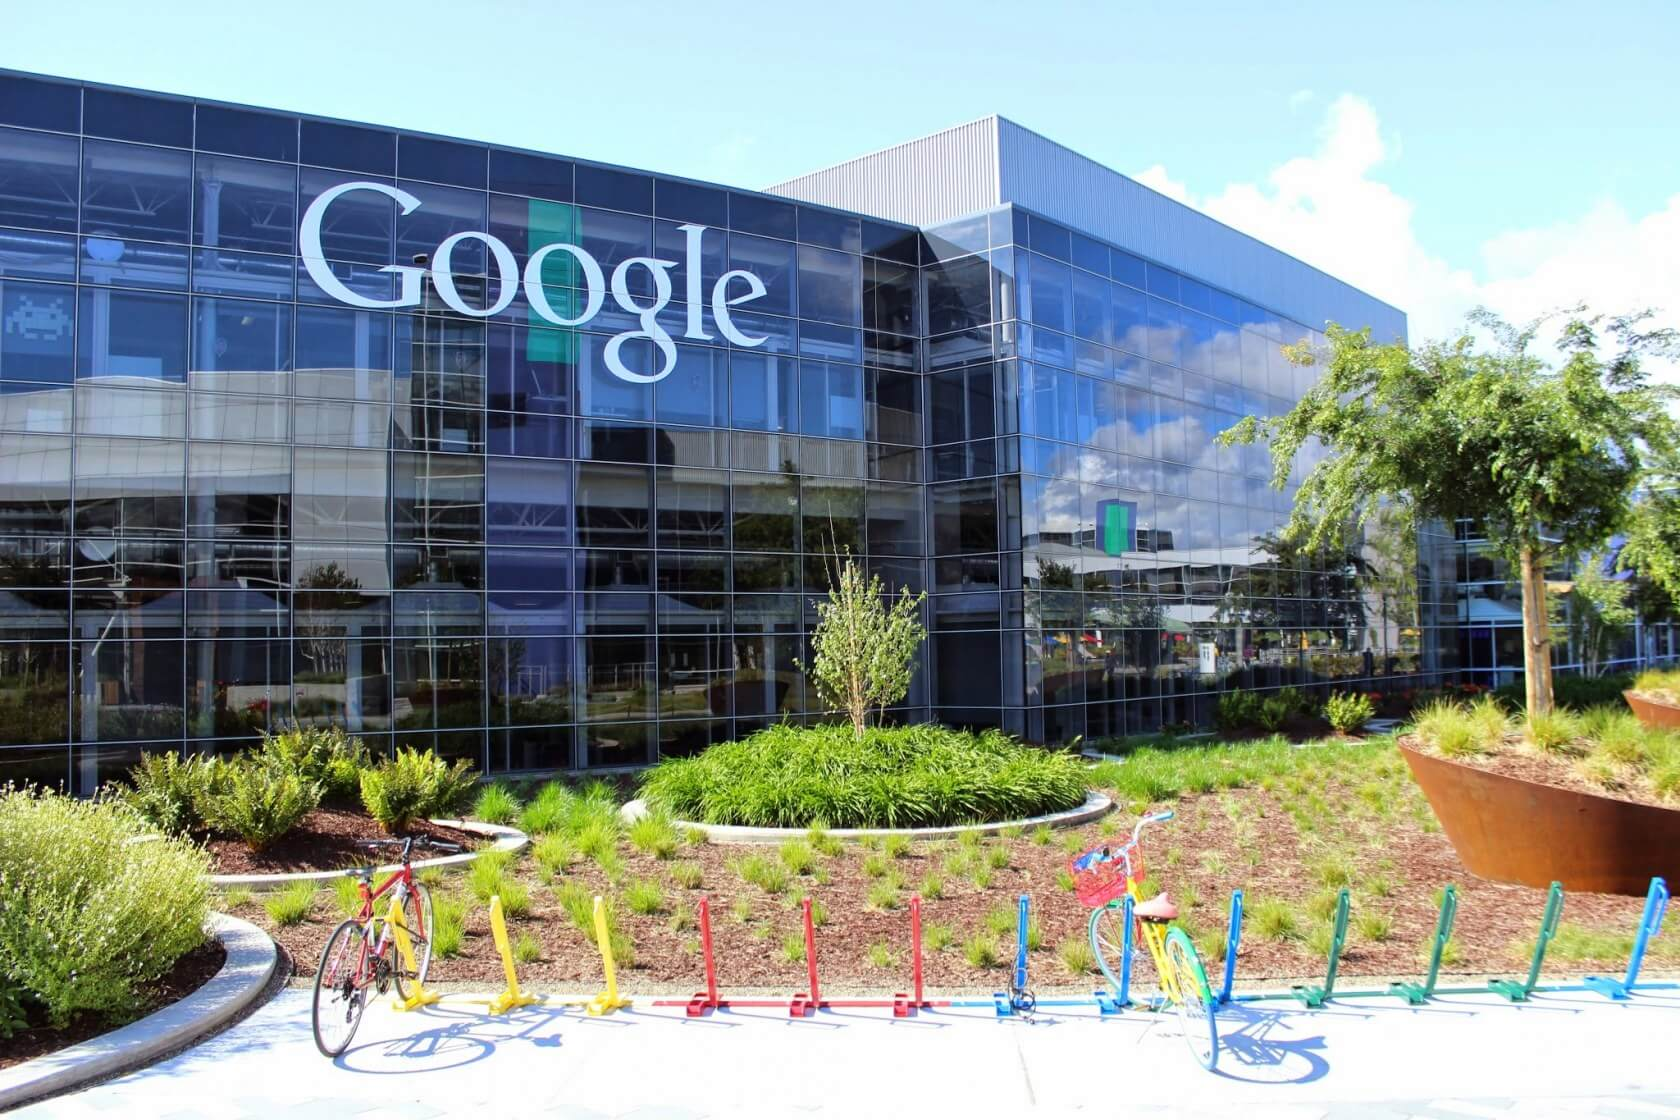 Over 1,000 Google workers demand company adopt climate action plan